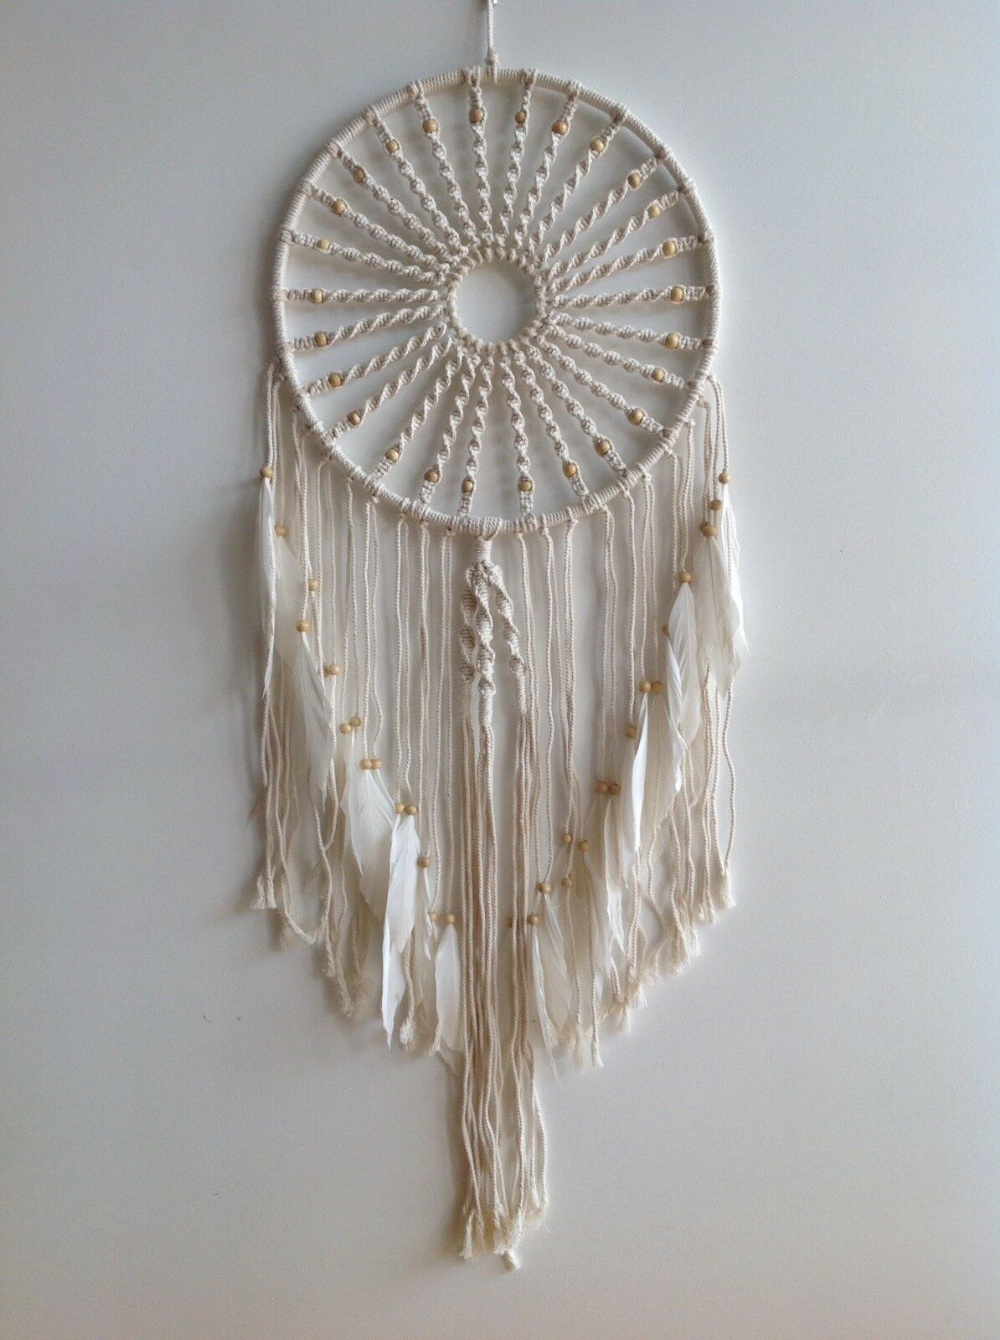 Photo of Details about 32cm X 100cm Rope Macrame Dream Catcher Wall Hanging with White Feathers